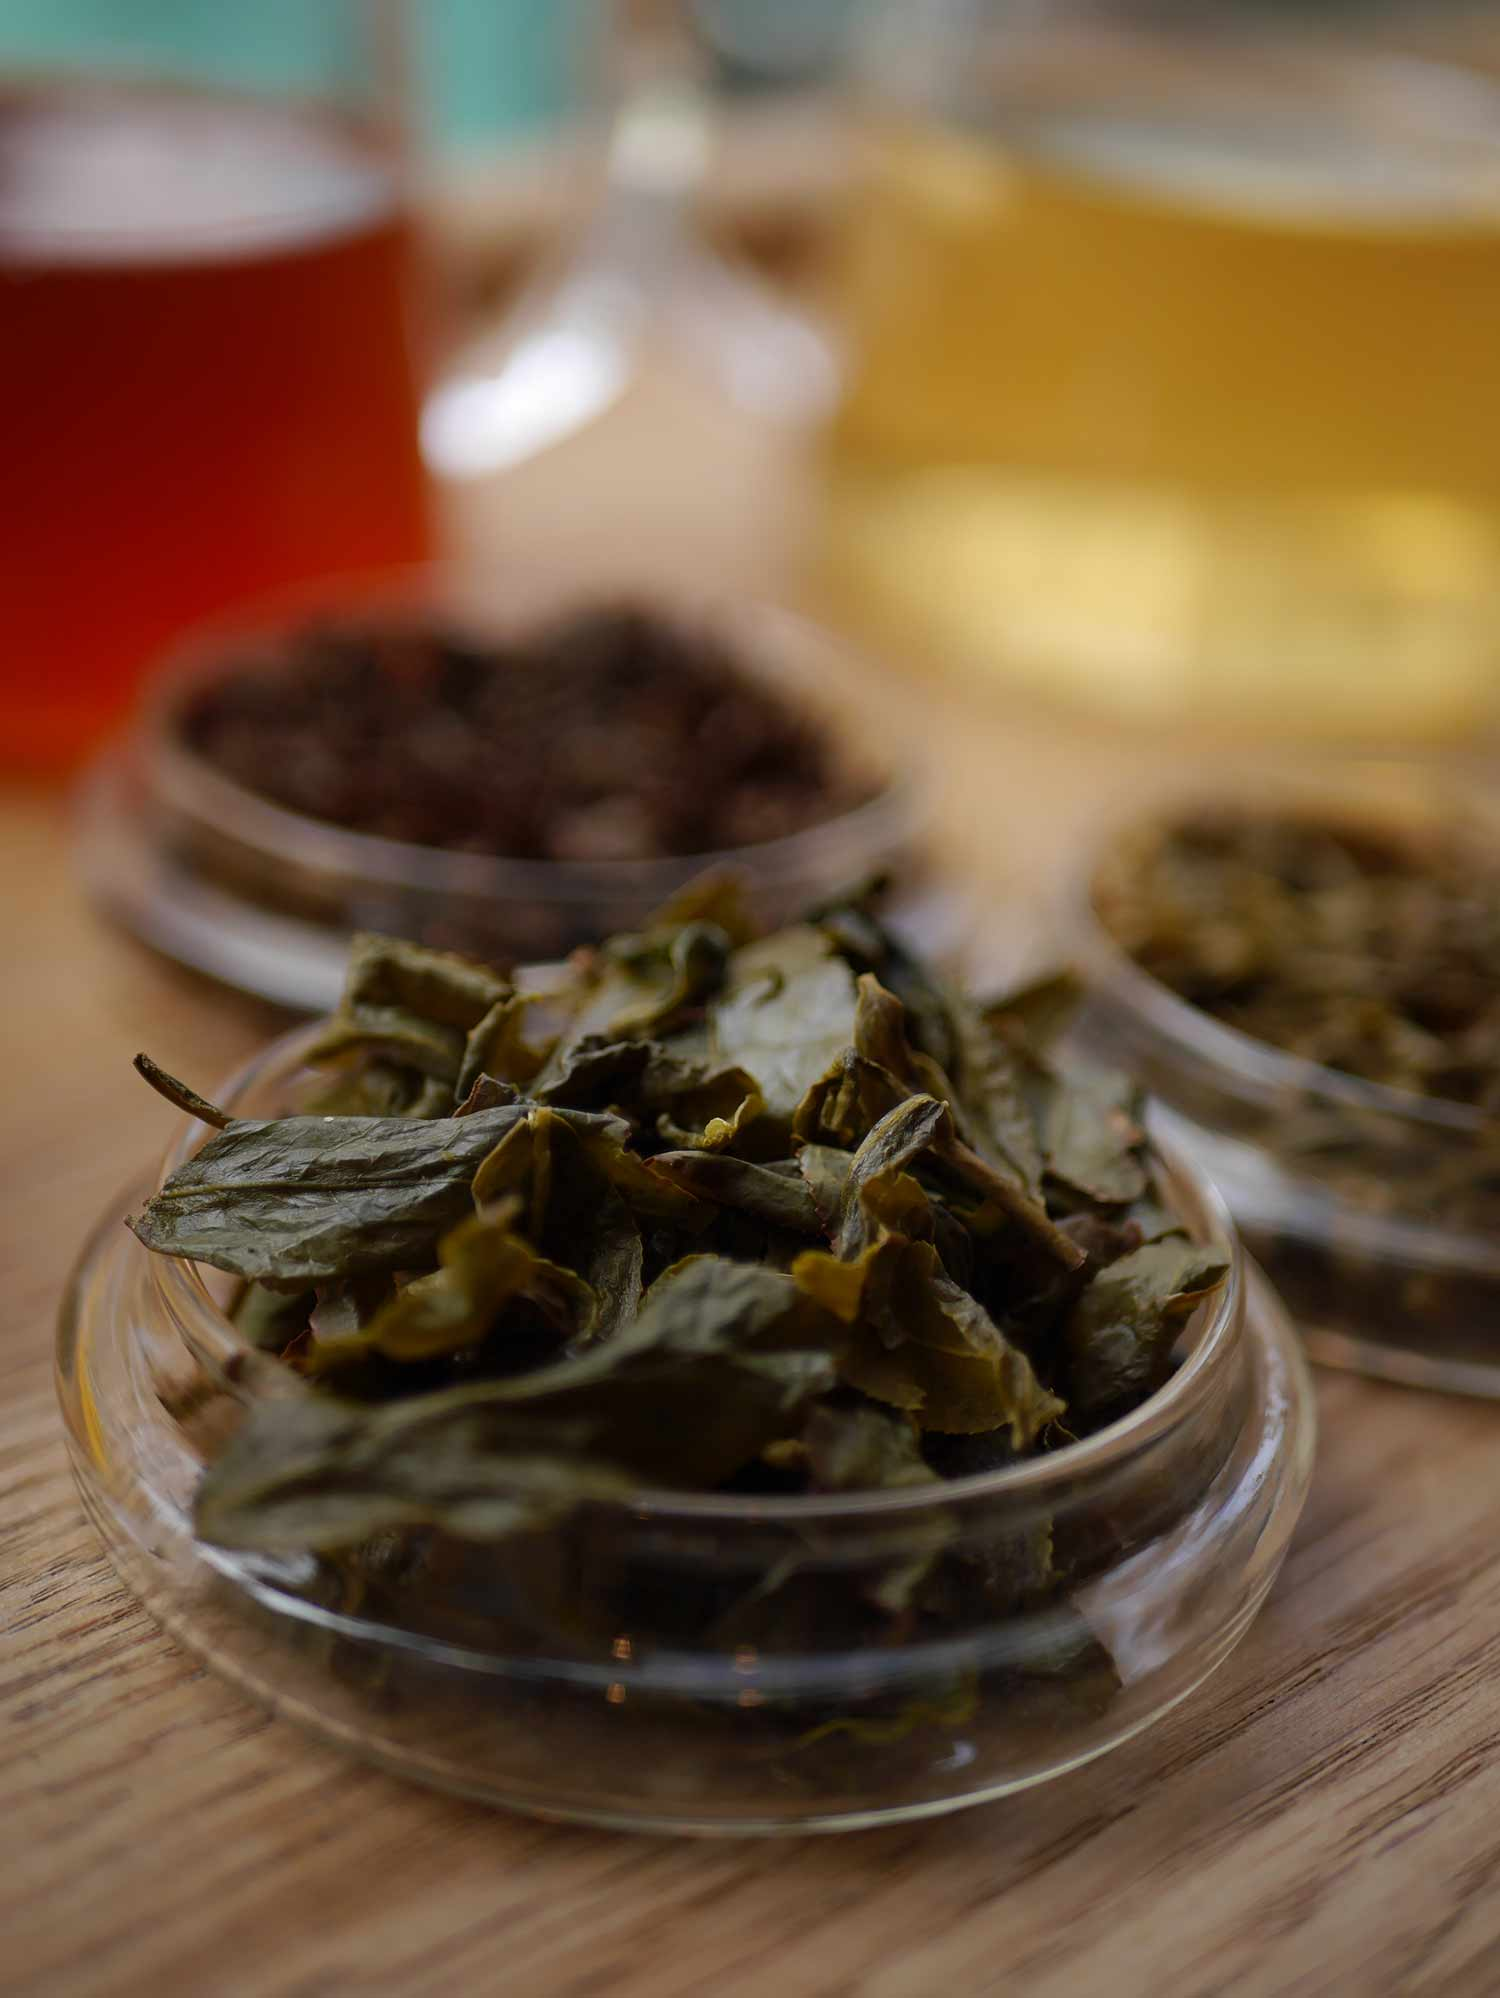 Oolong tea leaf